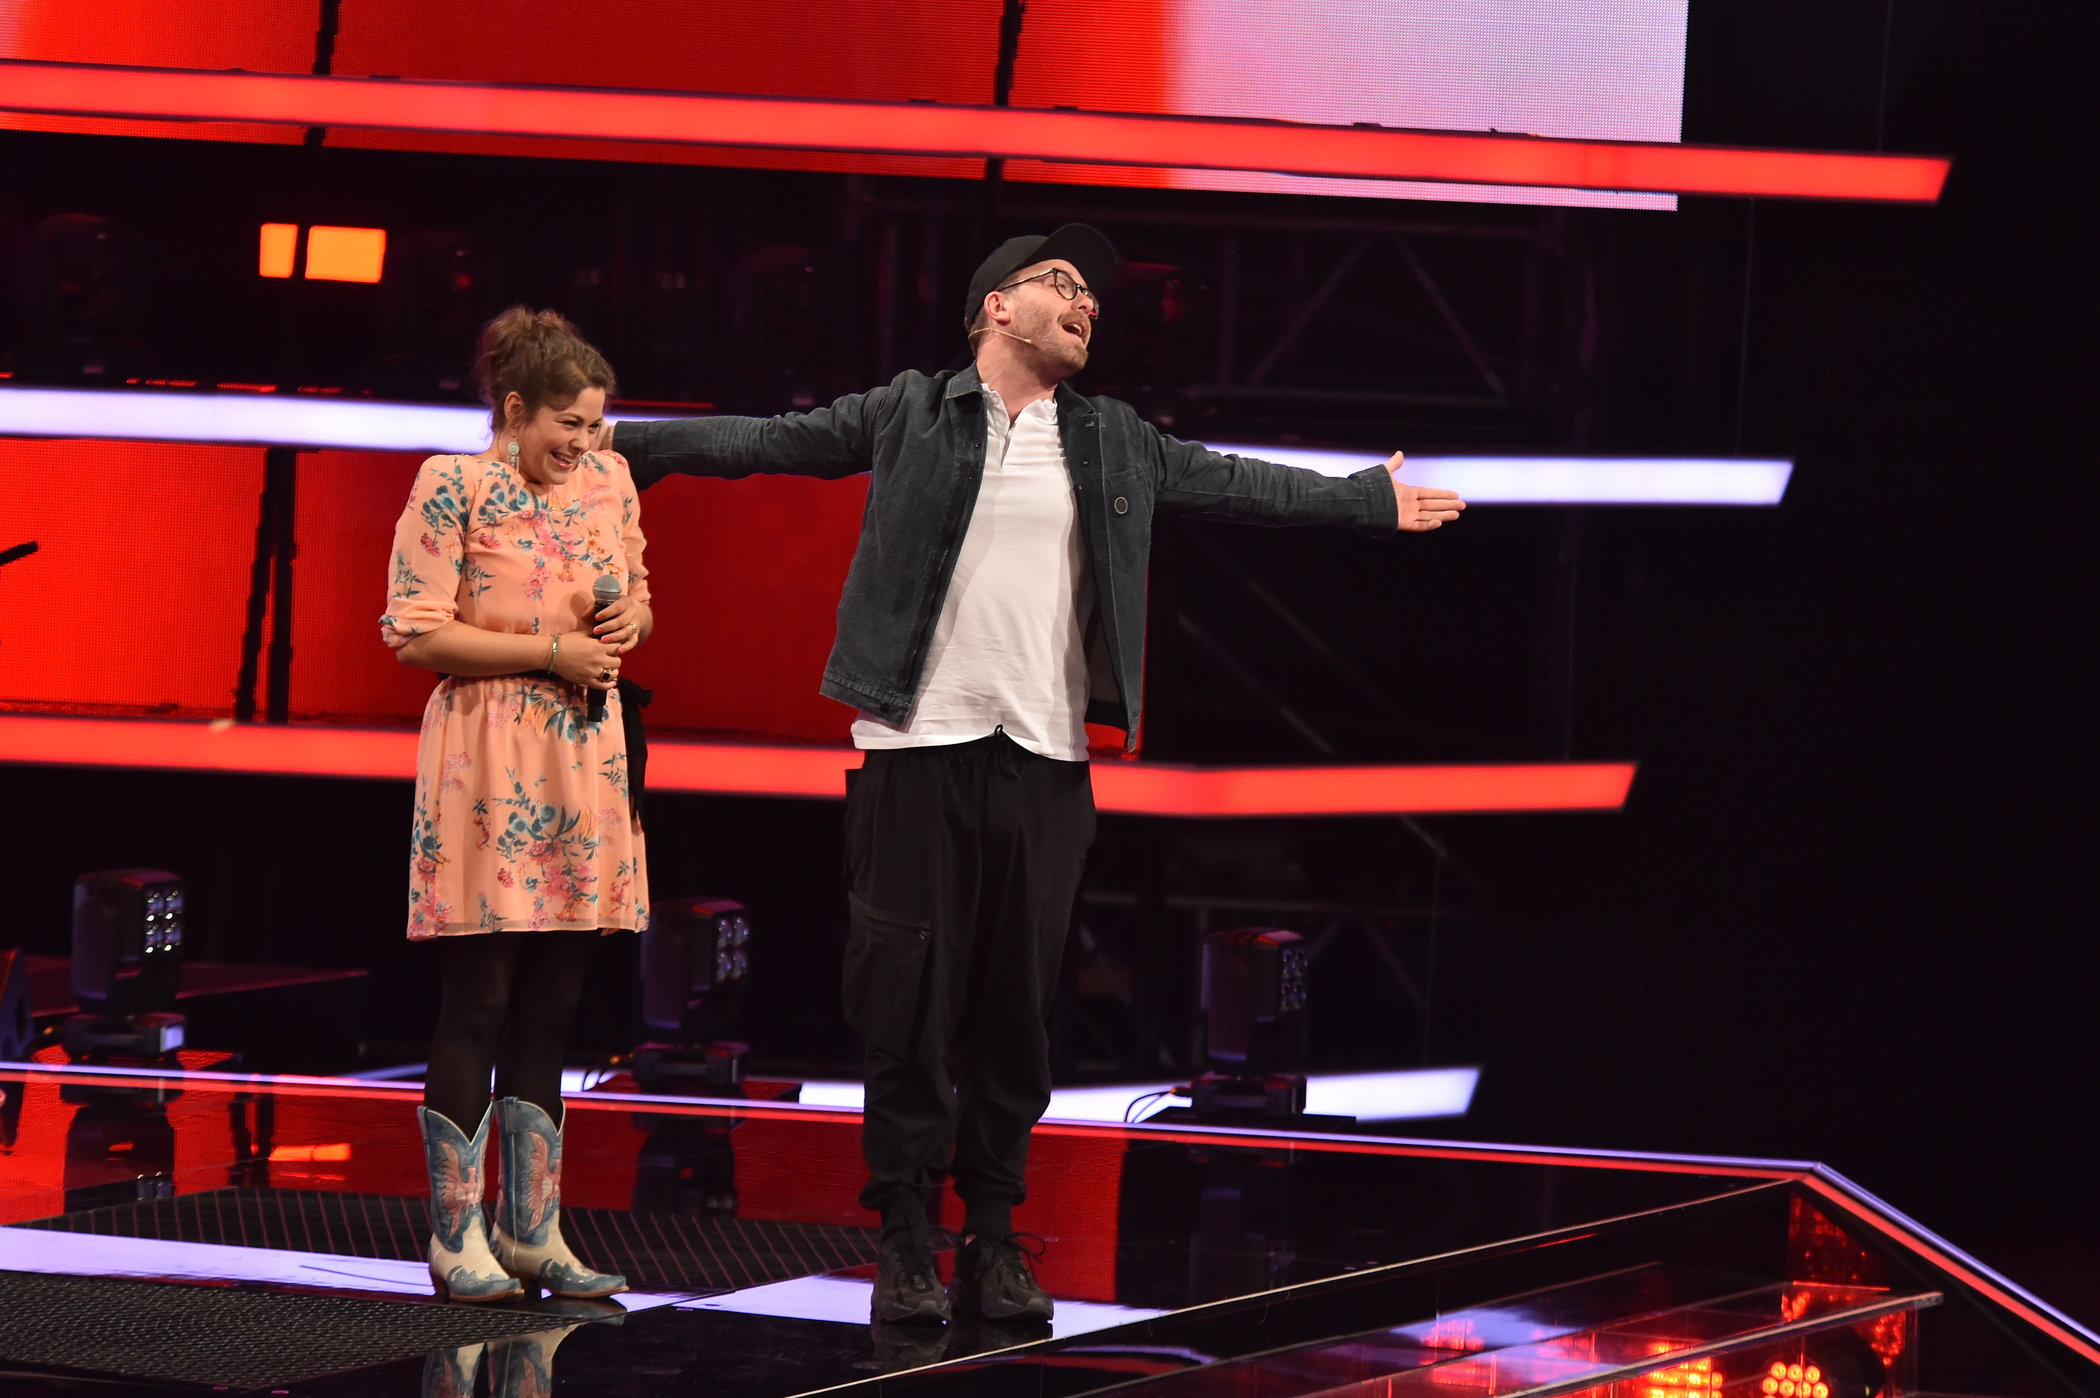 The Voice of Germany, Fidi Steinbeck, Team Mark, Mark Forster, Staffel 9, The Voice of Germany-Coaches, Pro 7, TV, Fernsehen, Cello, Hamburg, Bergedorf, Coaches, The Voice 2019, Musikfans, Musik, Musikerin